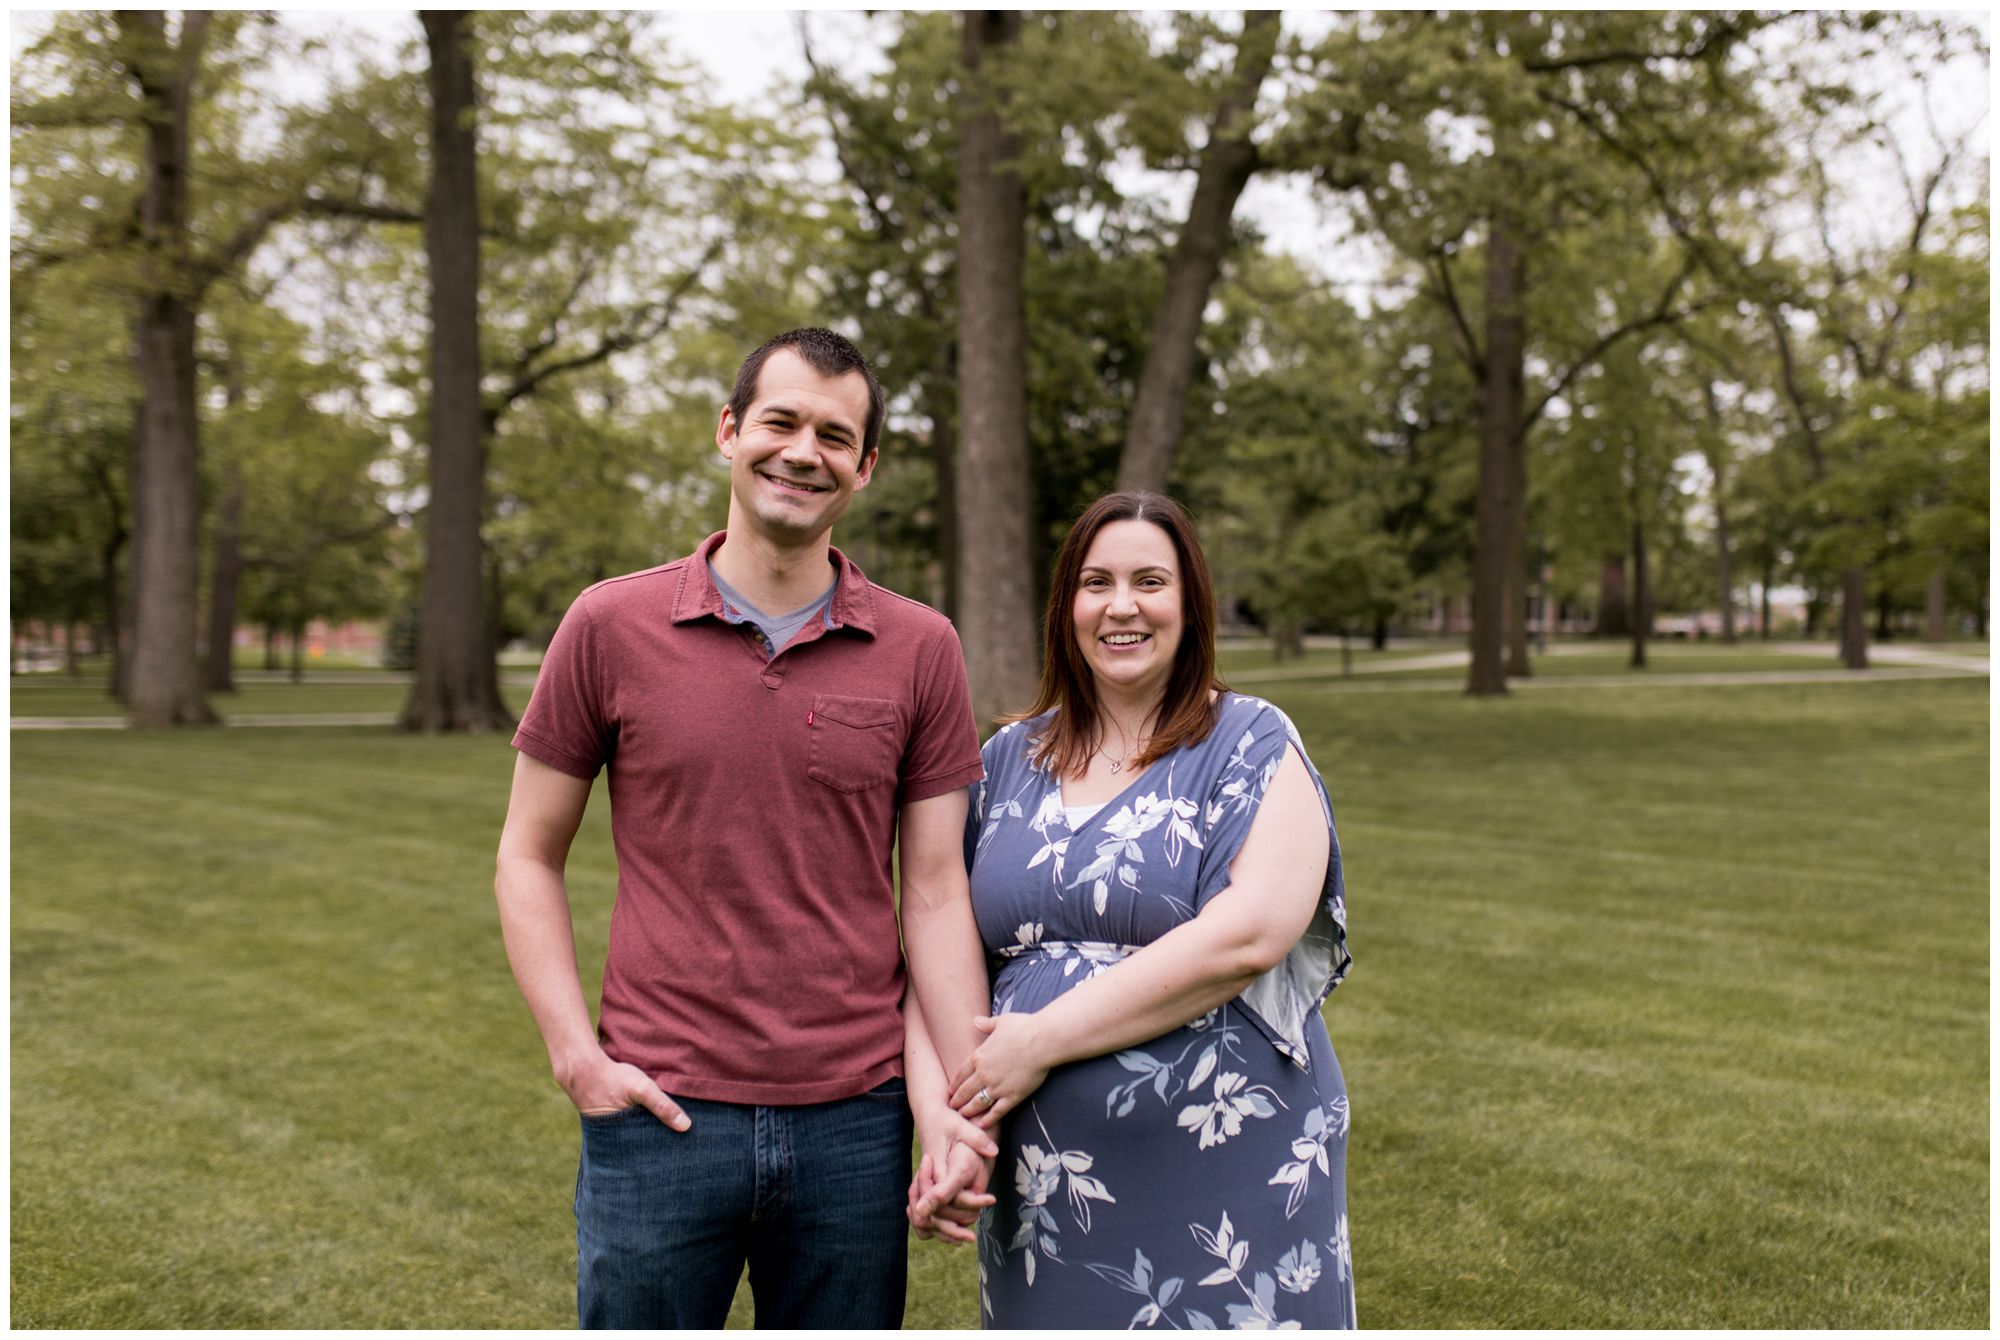 mom and dad hold hands during maternity session at Ball State University